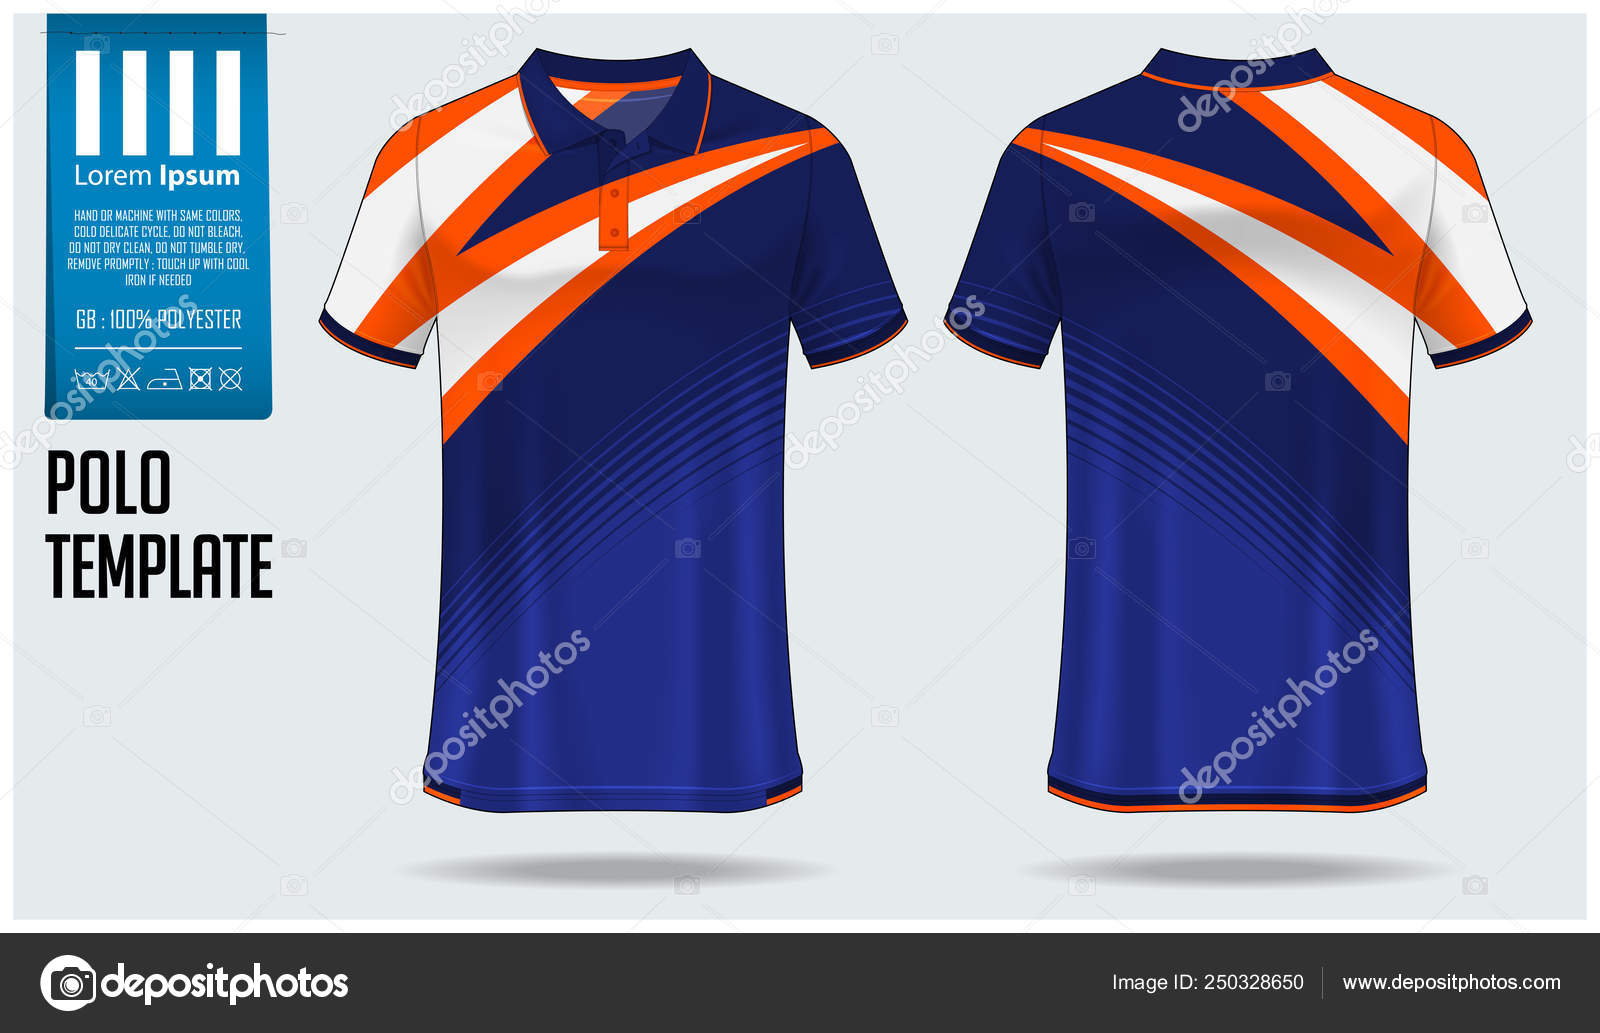 5468f4dac Polo t-shirt template design for soccer jersey, football kit or sportswear. Sport  uniform in front ...